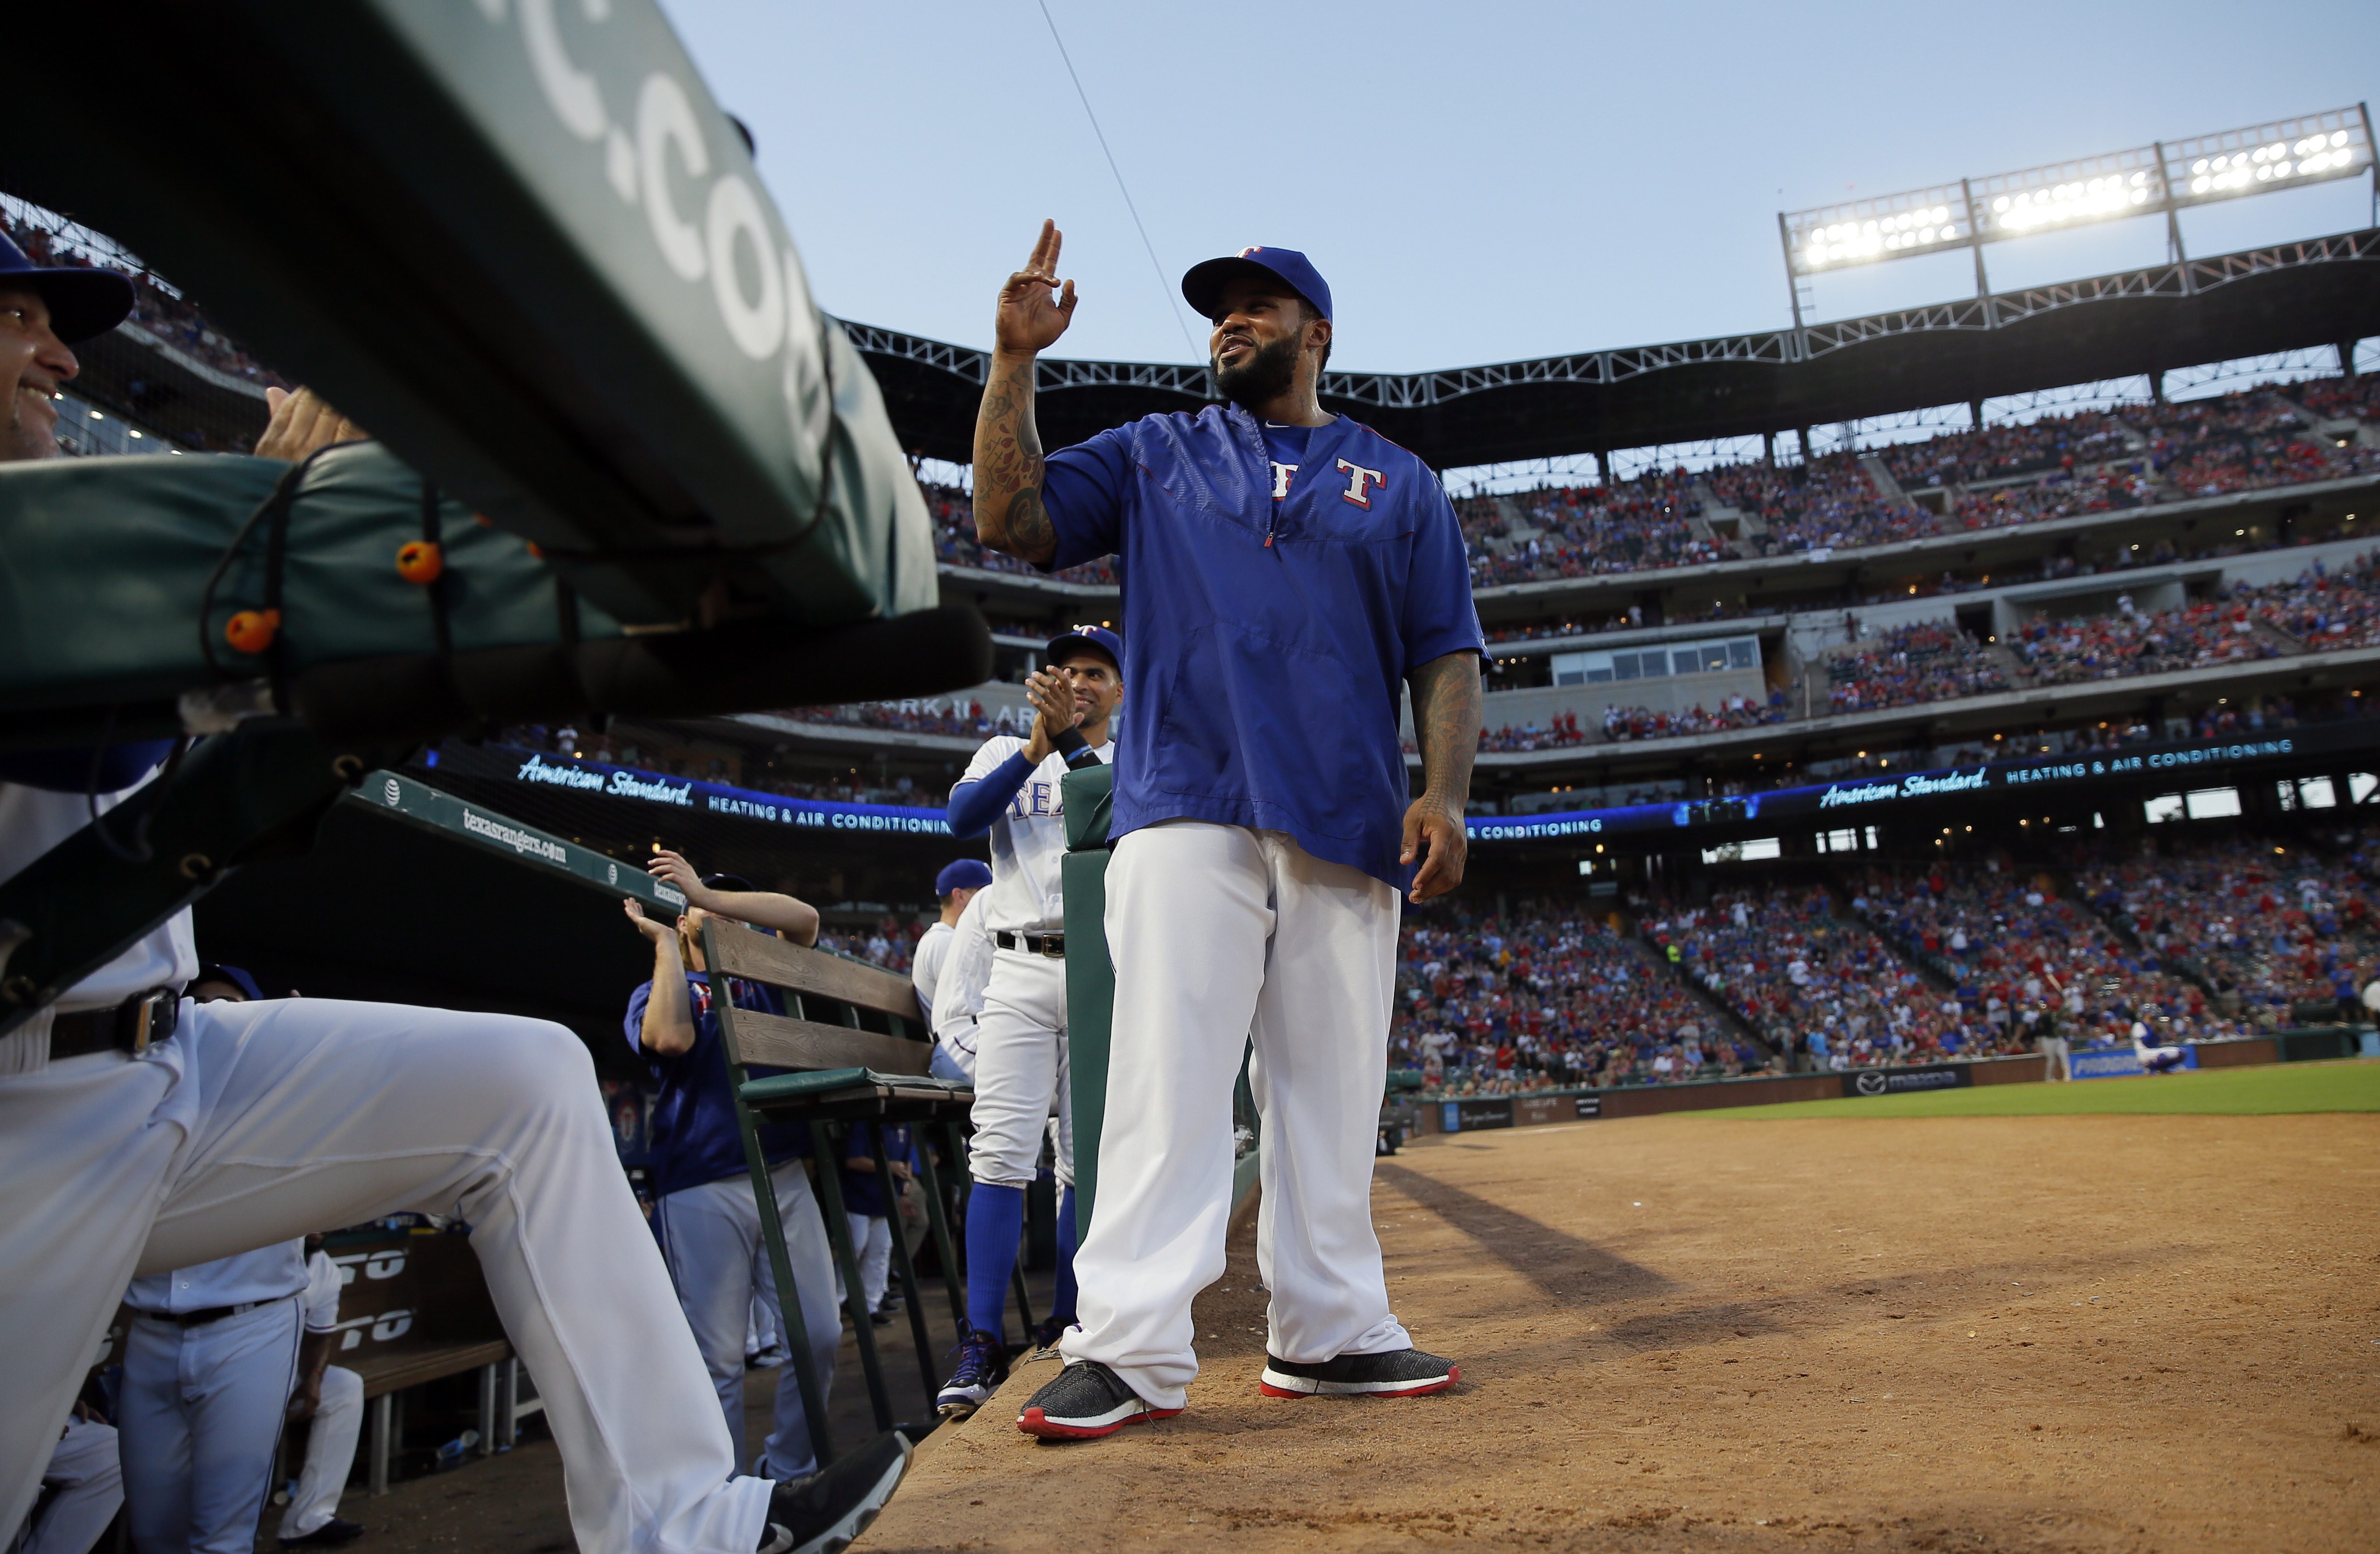 Retired Texas Rangers player Prince Fielder acknowledges fans after being introduced in the first inning of a baseball game against the Oakland Athletics, Saturday, Sept. 17, 2016, in Arlington, Texas. (AP Photo/Tony Gutierrez)